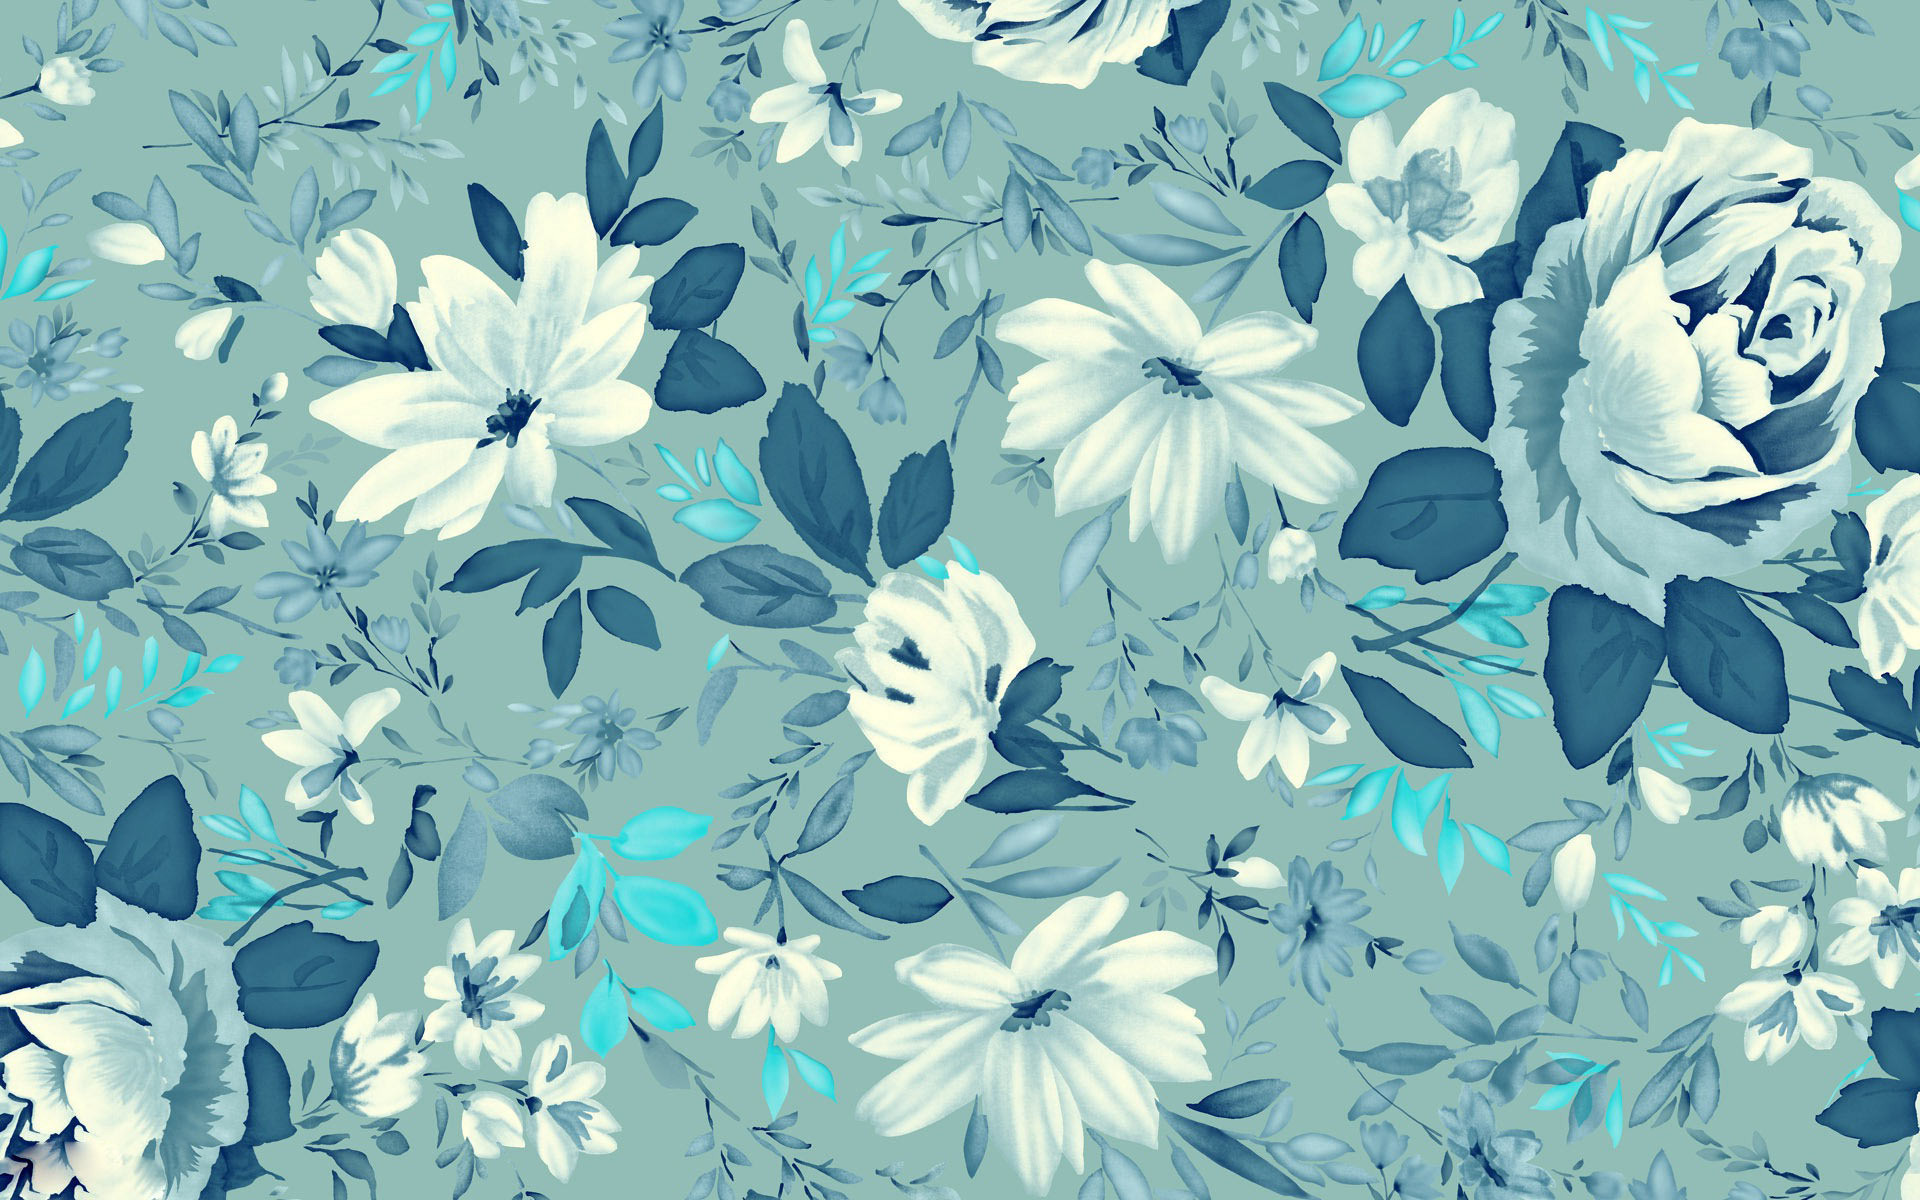 Black Floral Background Tumblr ·① Flower Background Pattern Tumblr